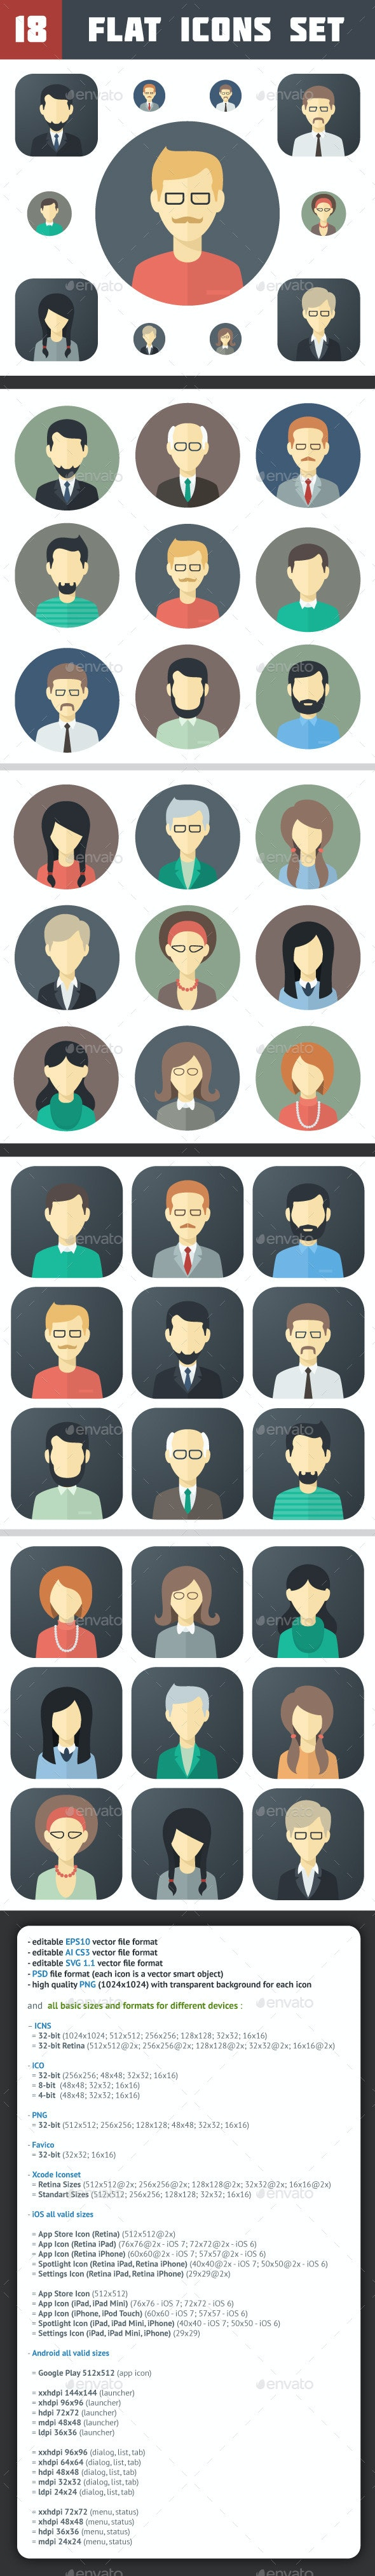 Minimalistic Flat Persons Icons Set 1 - People Characters